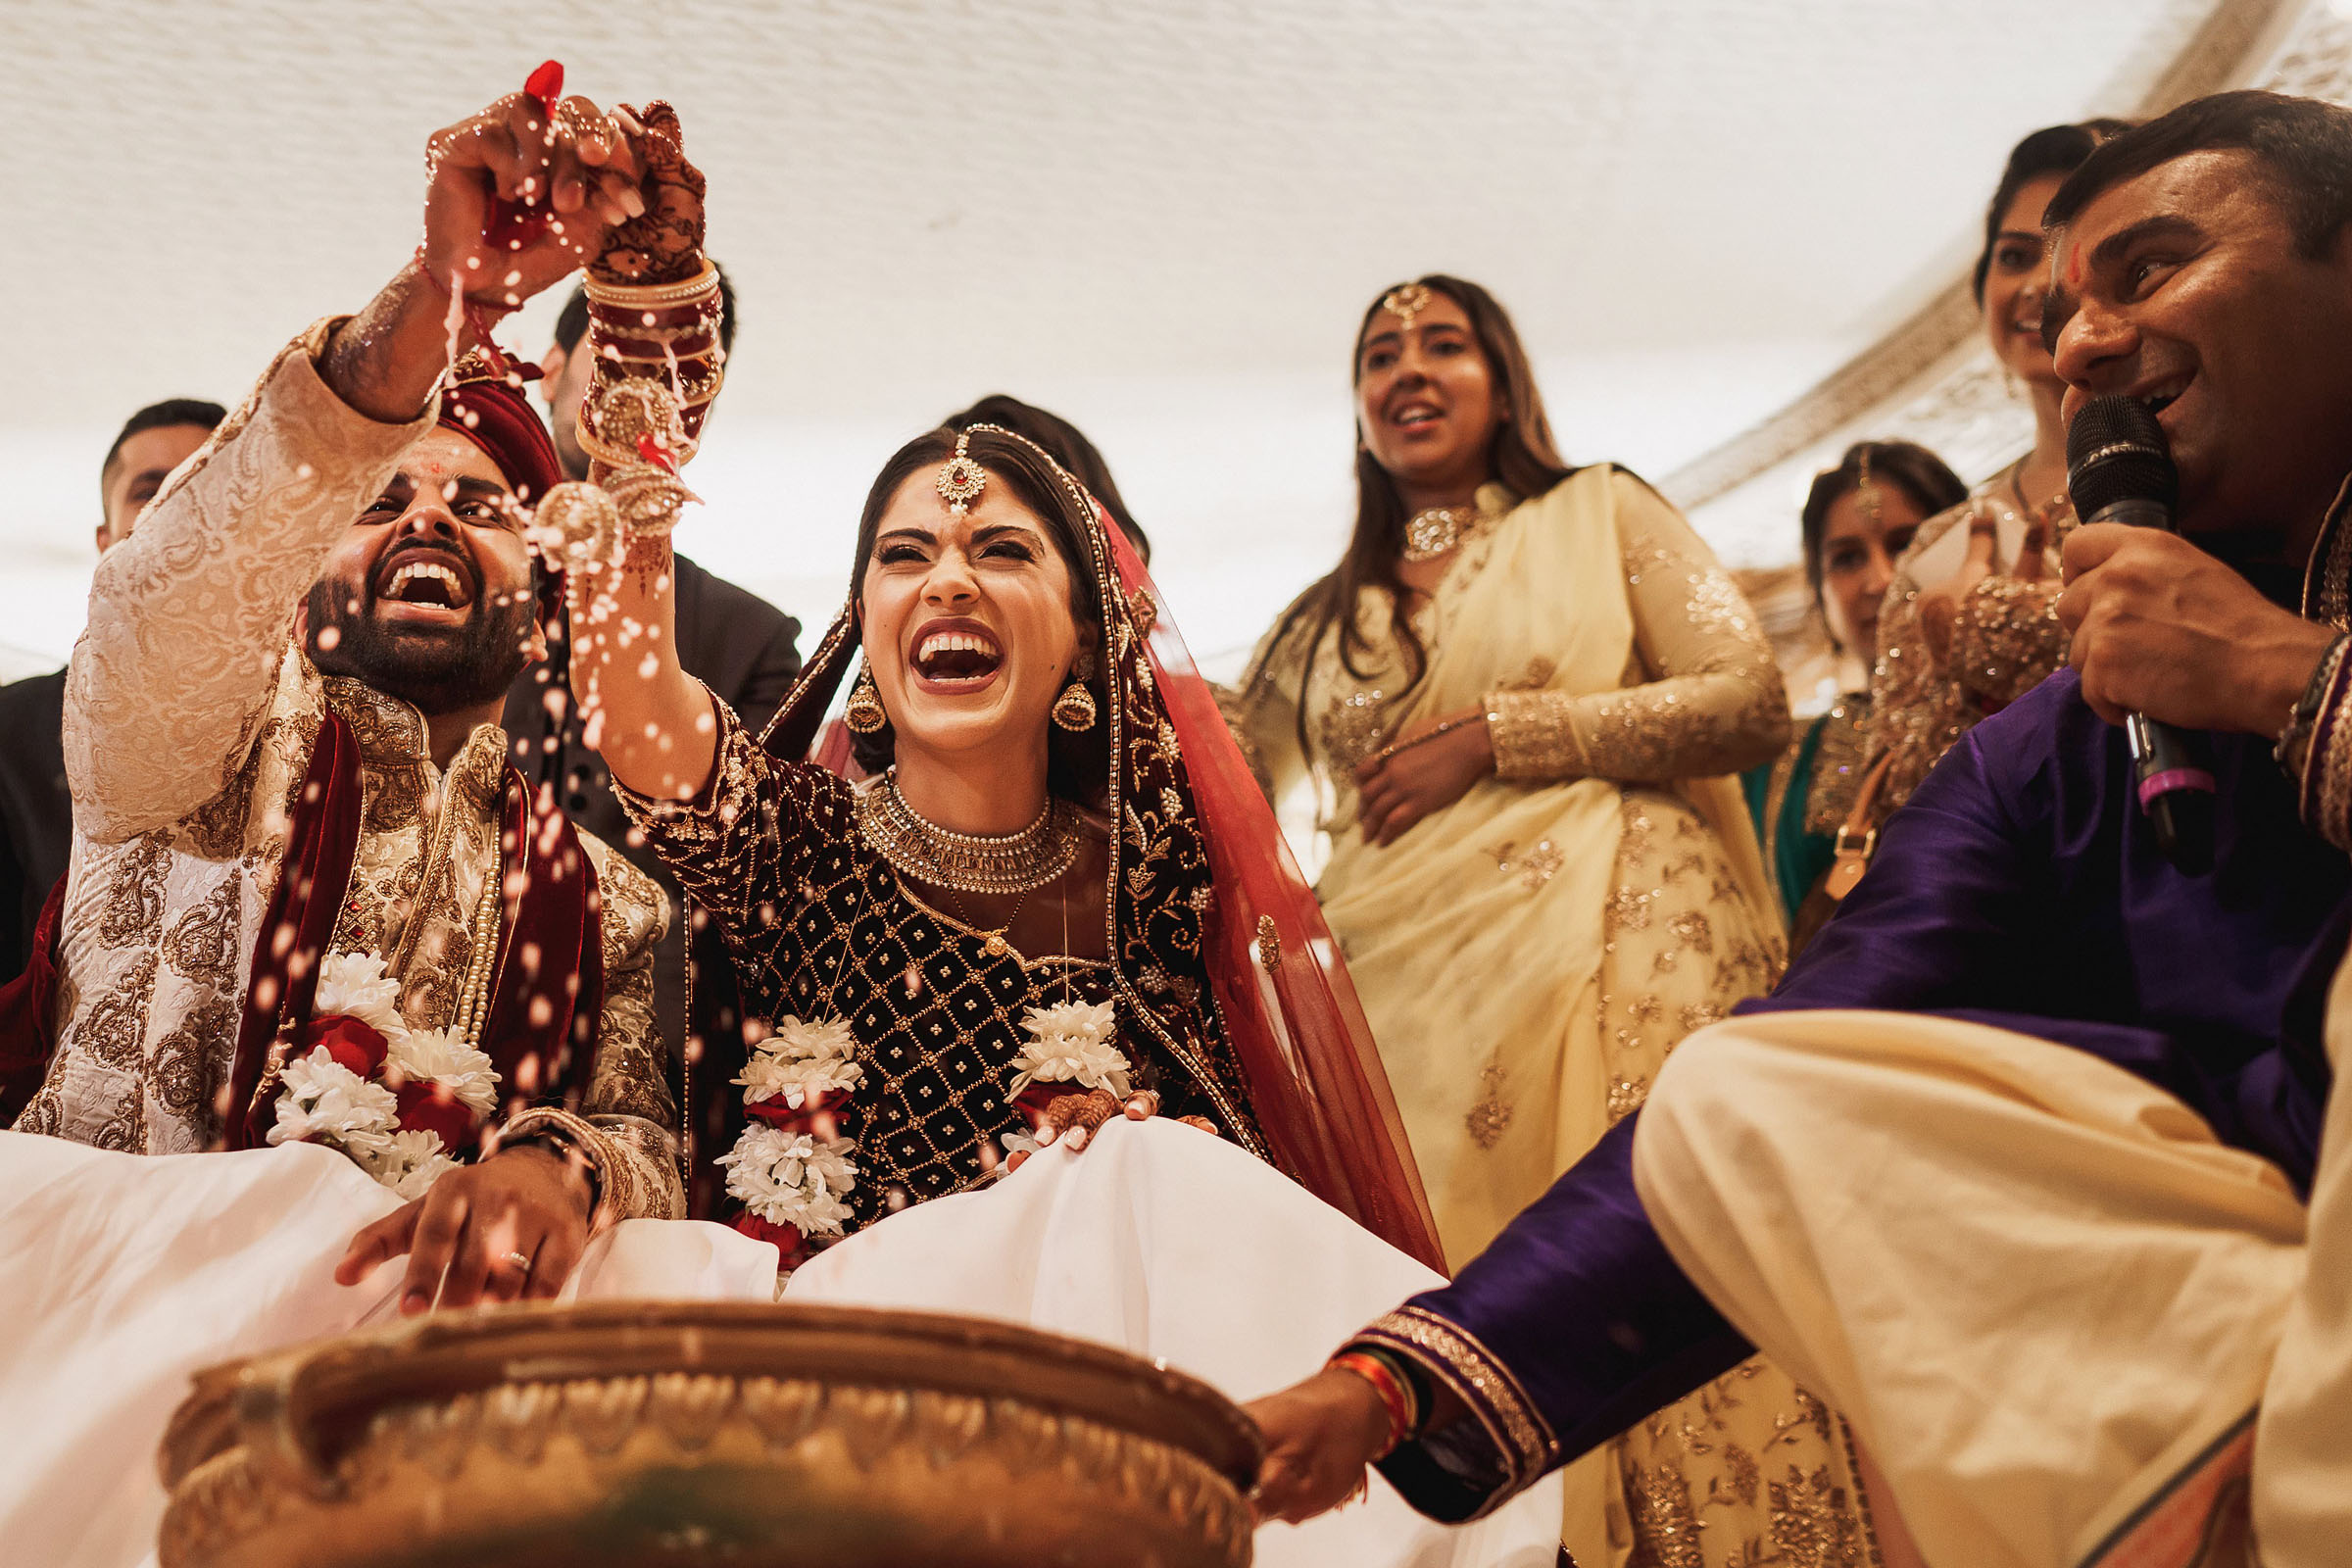 Happy couple during Indian ceremony - photo by F5 Photography